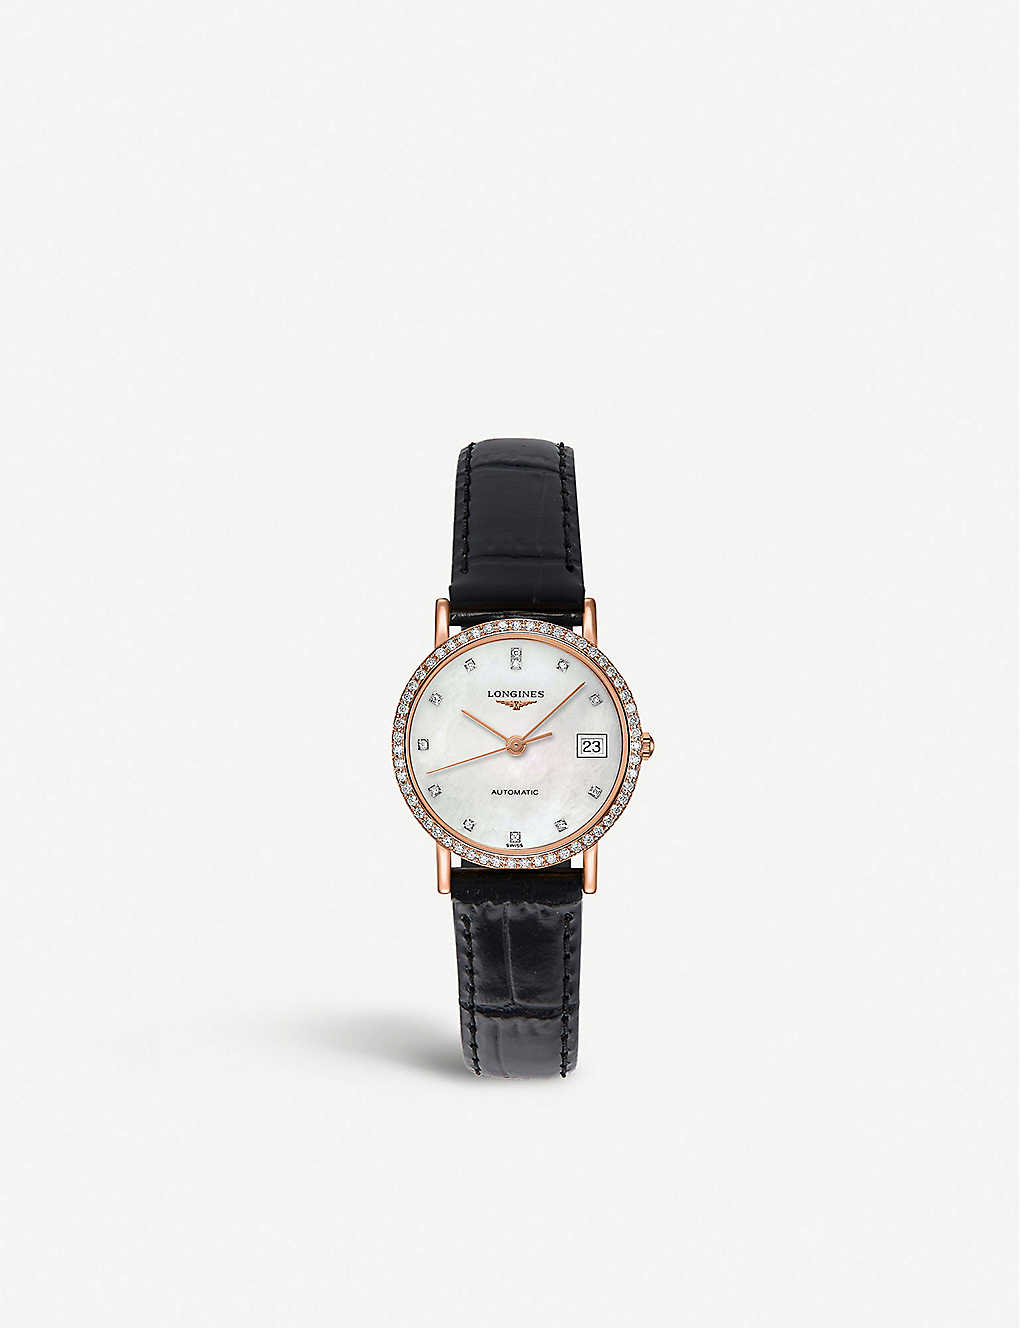 279f49acf LONGINES Elegant 18ct rose gold, mother-of-pearl and leather strap watch